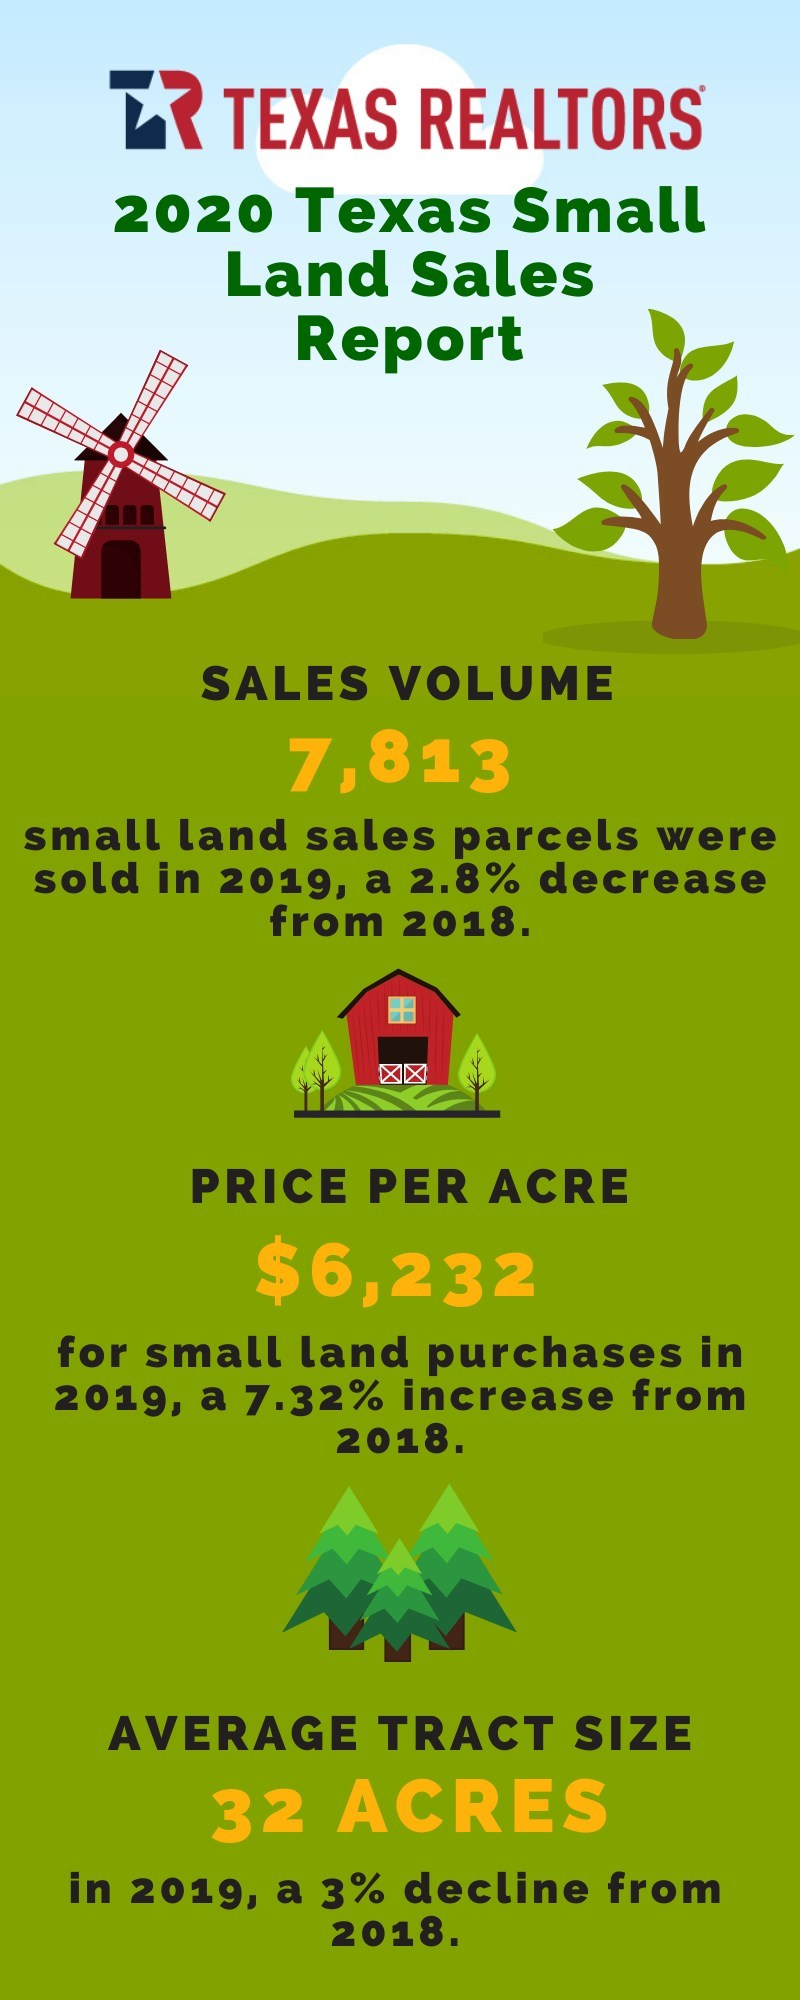 Texas Small Land Sales Volume Declines In 2019 While Price Per Acre Increases